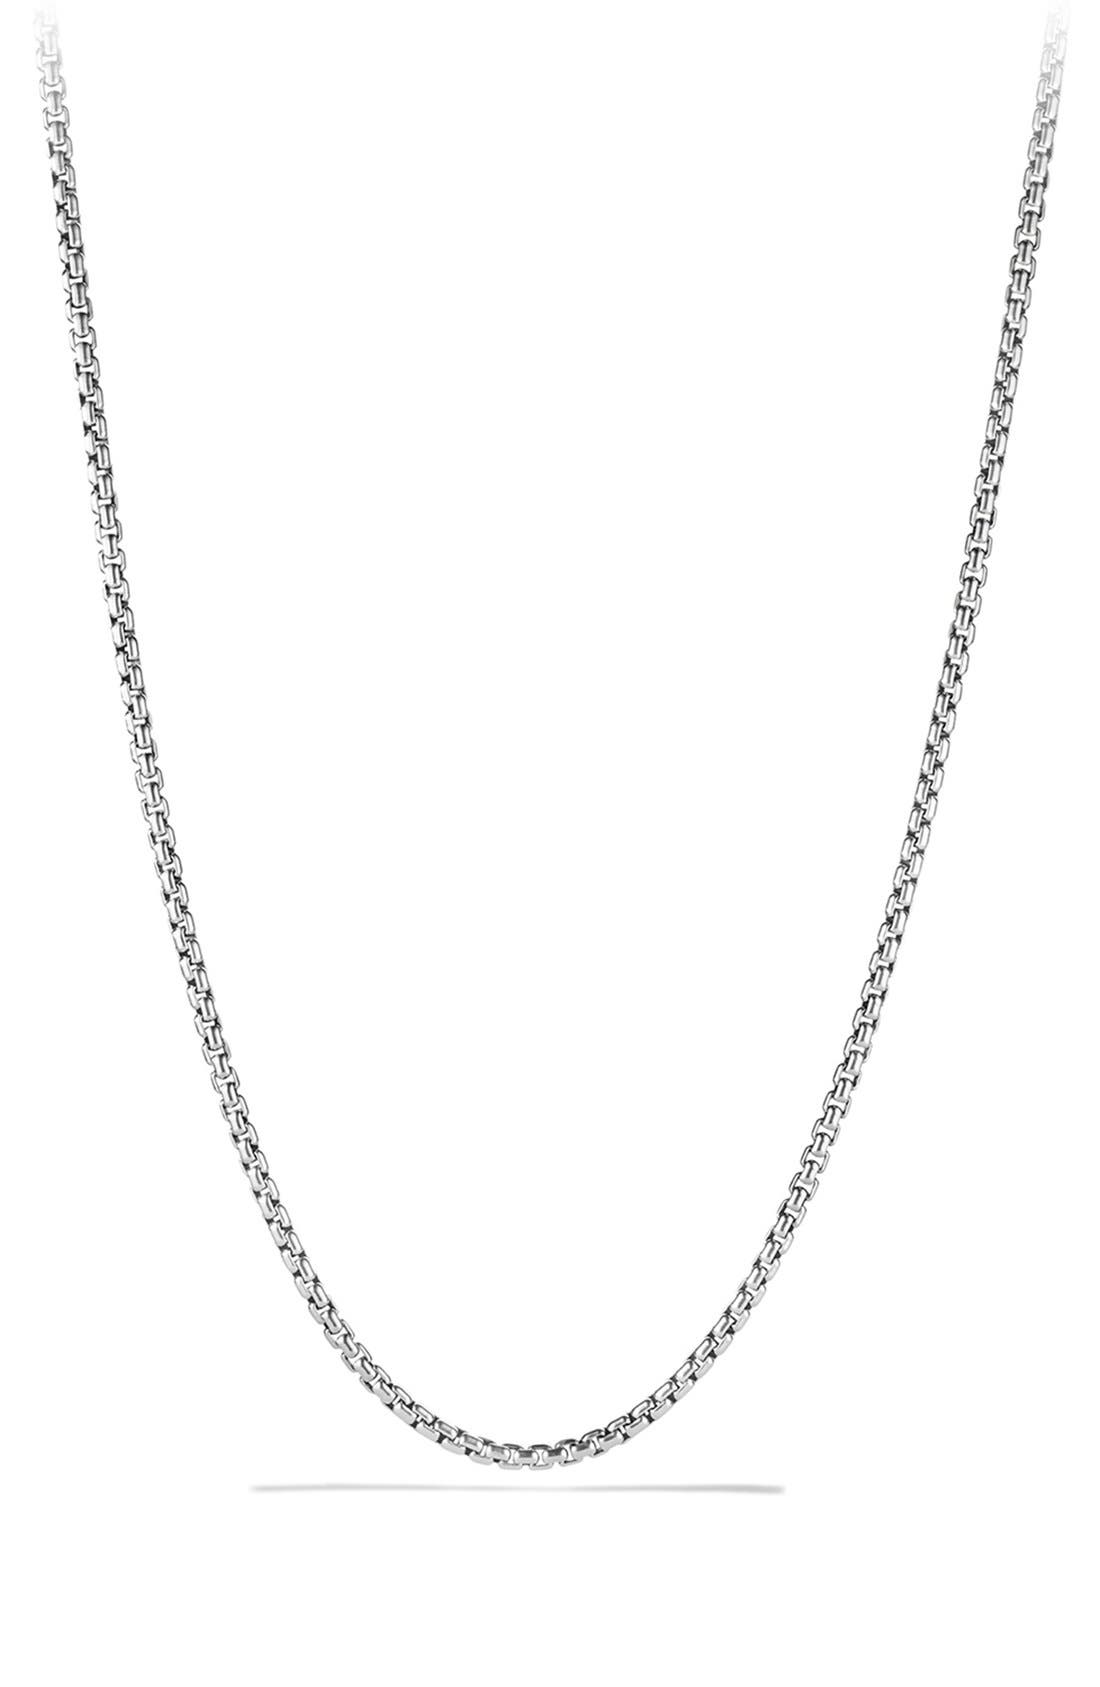 Alternate Image 1 Selected - David Yurman 'Chain' Box Chain Necklace